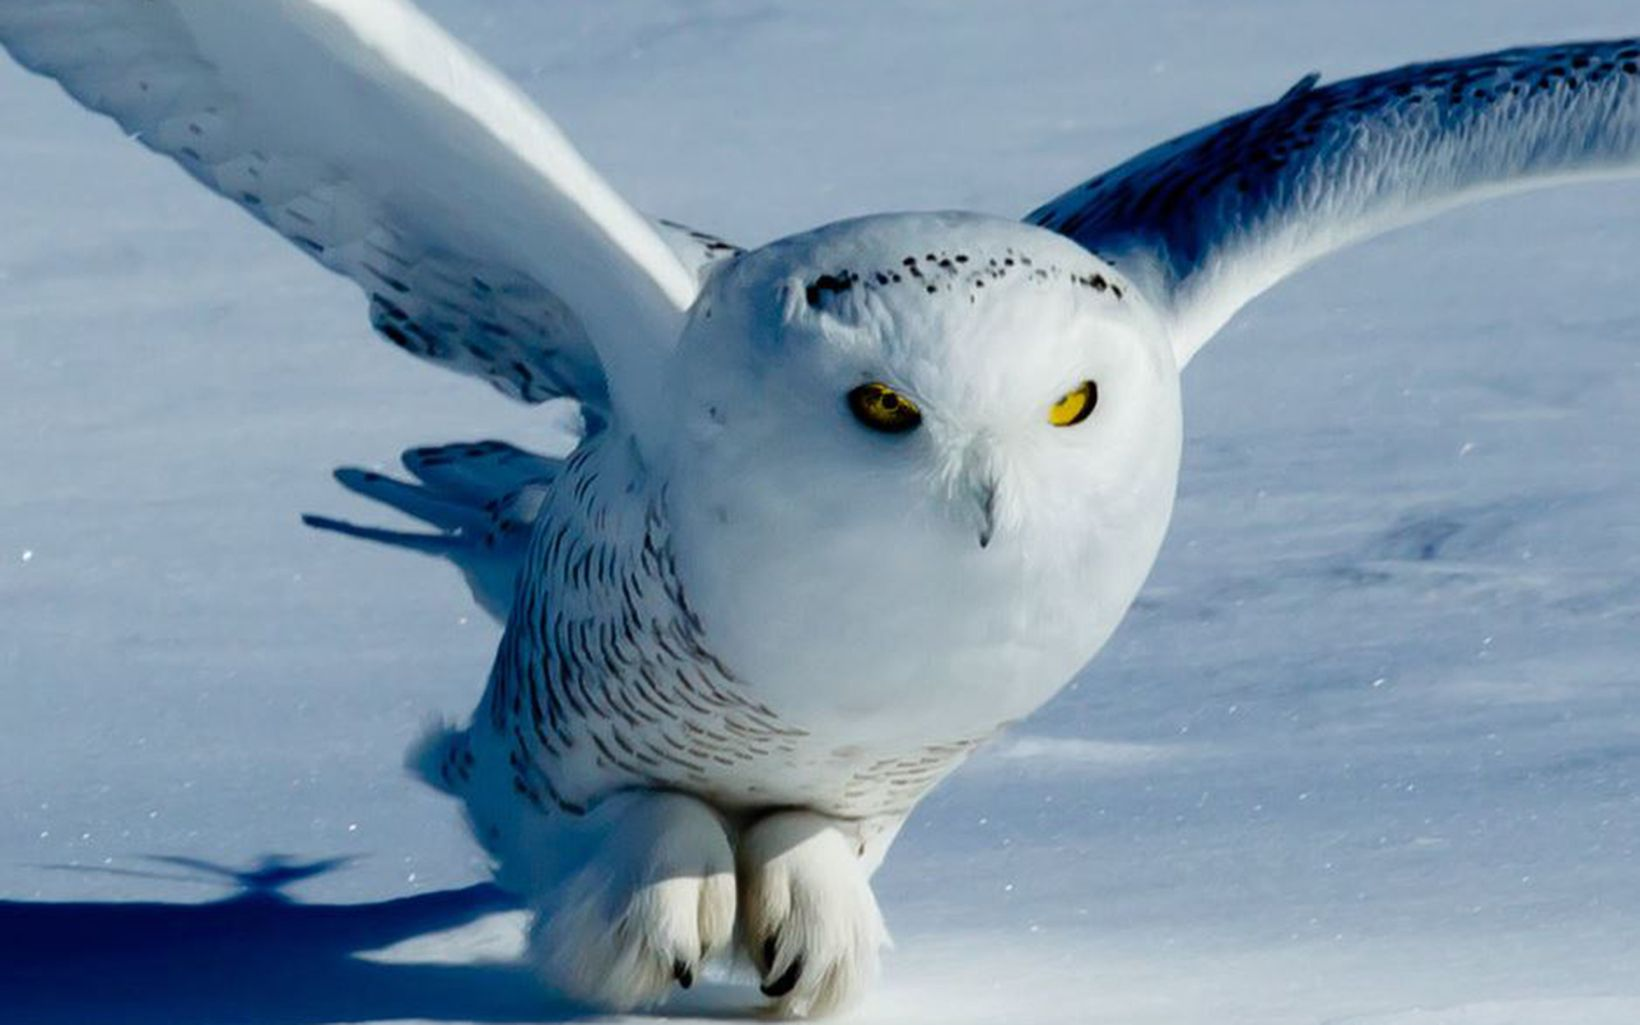 Snowy owl flying close to the snow